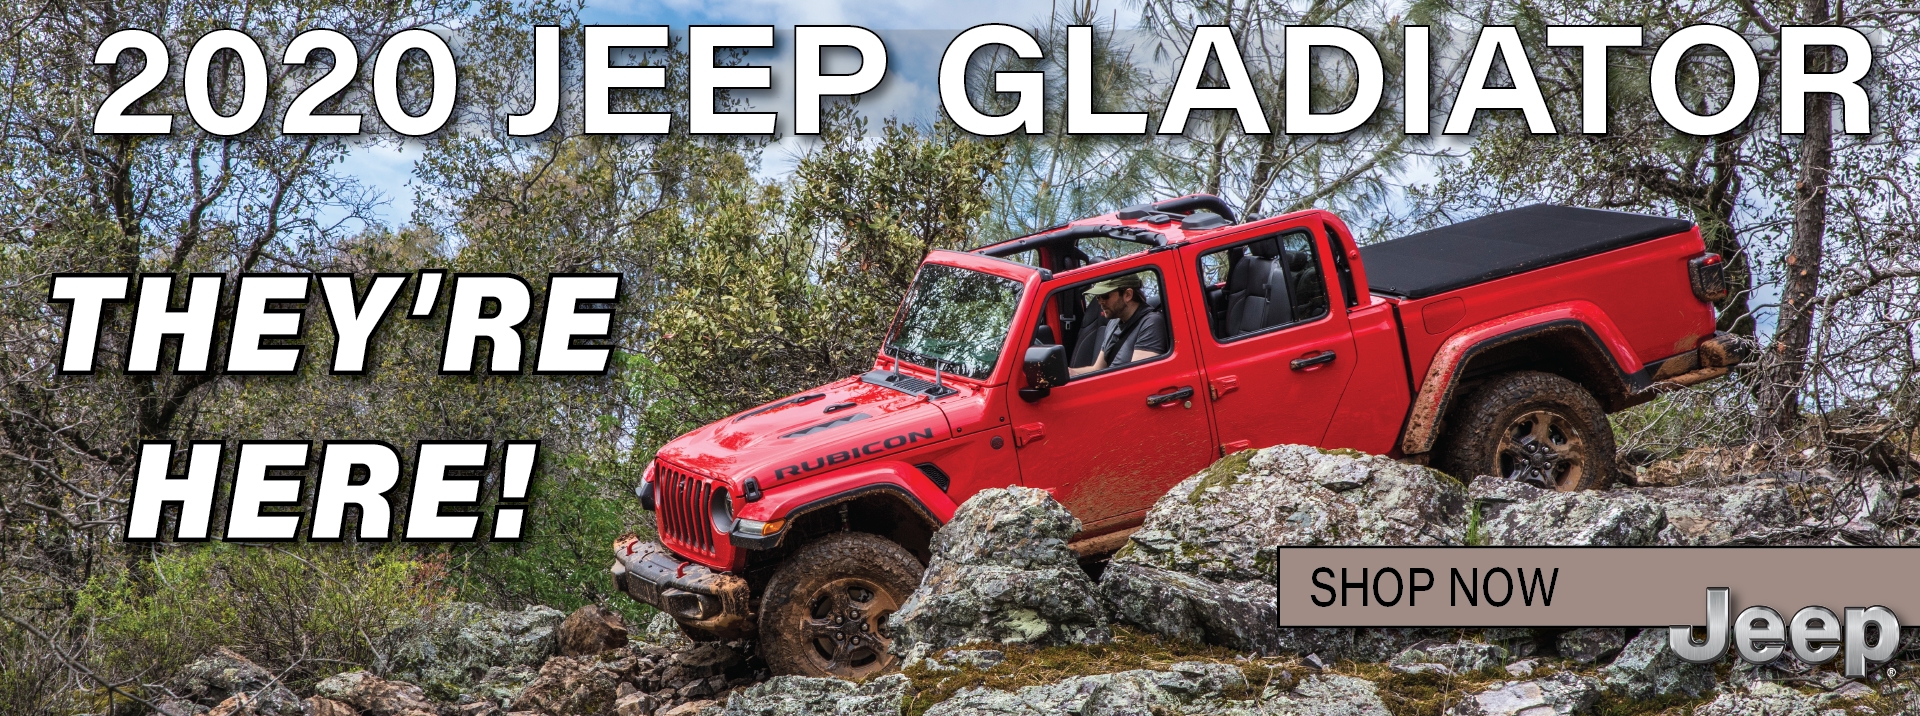 Red 2020 Jeep Gladiator For sale displayed on mountain side rock crawling